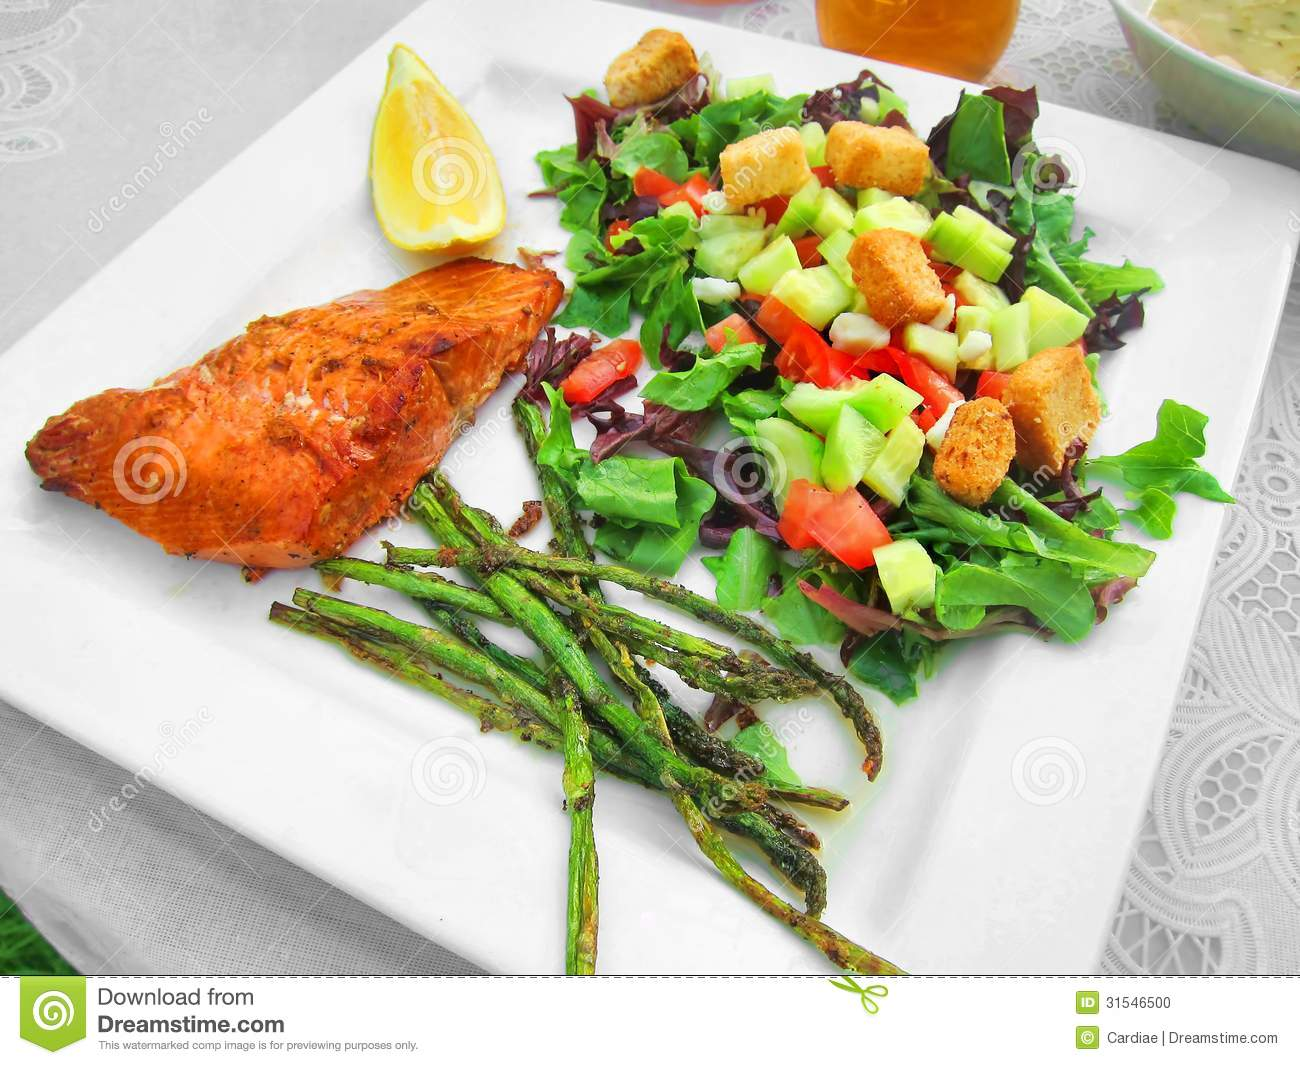 Healthy meal dinner lunch on white plate with fish salmon trout and